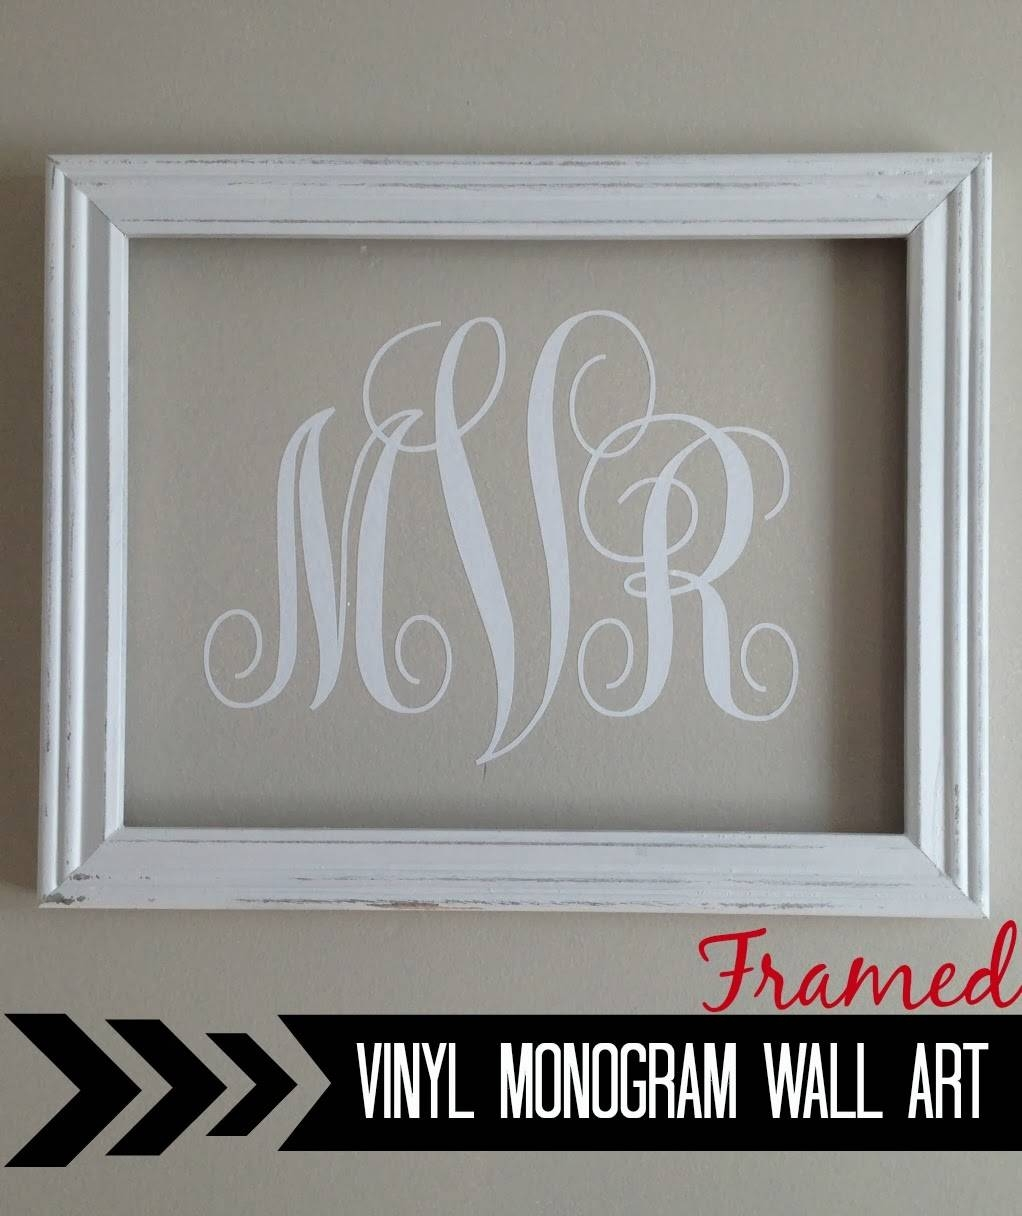 Wonderful Monogram Wall Art Groupon Image Of Monogram Wall For Recent Groupon Wall Art (View 19 of 20)